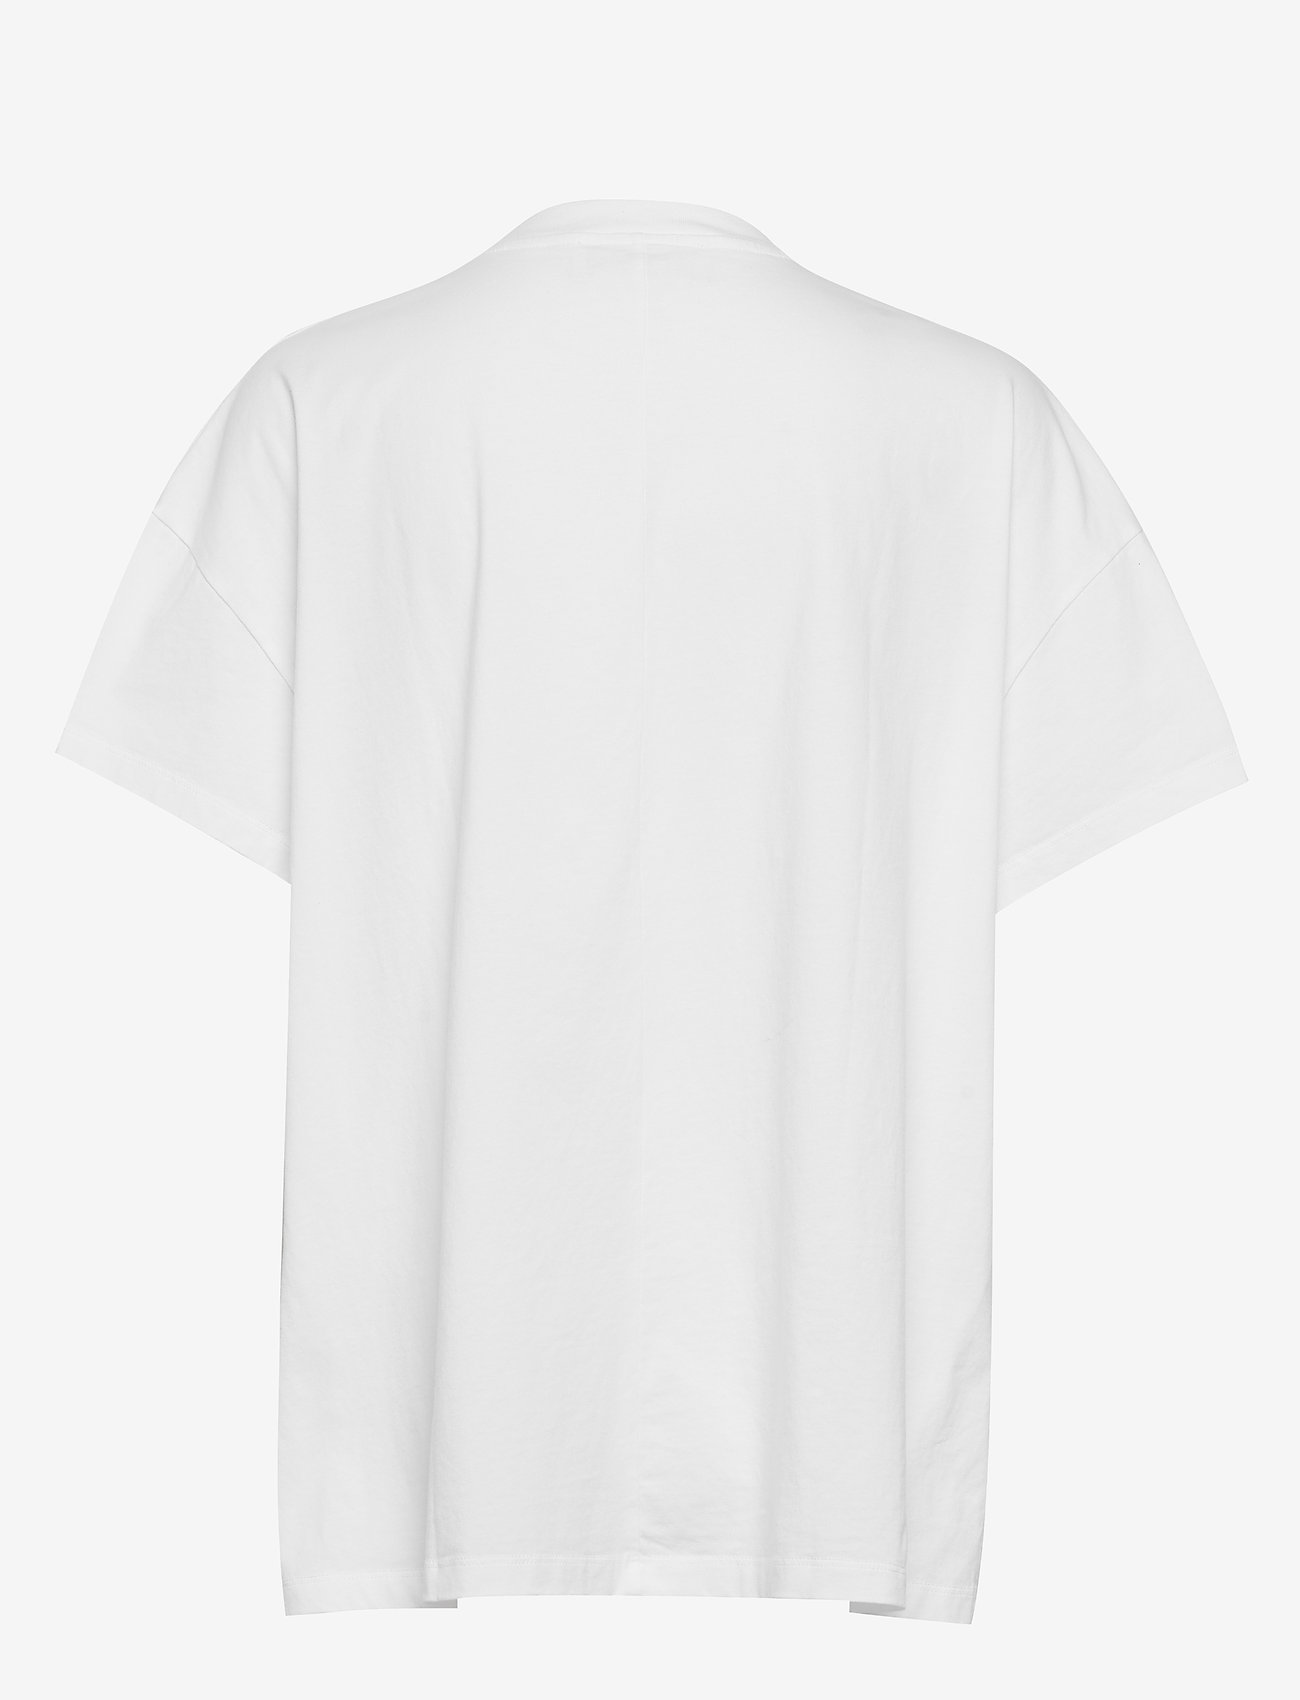 Fall Winter Spring Summer - Thale - t-shirts - bright white - 1